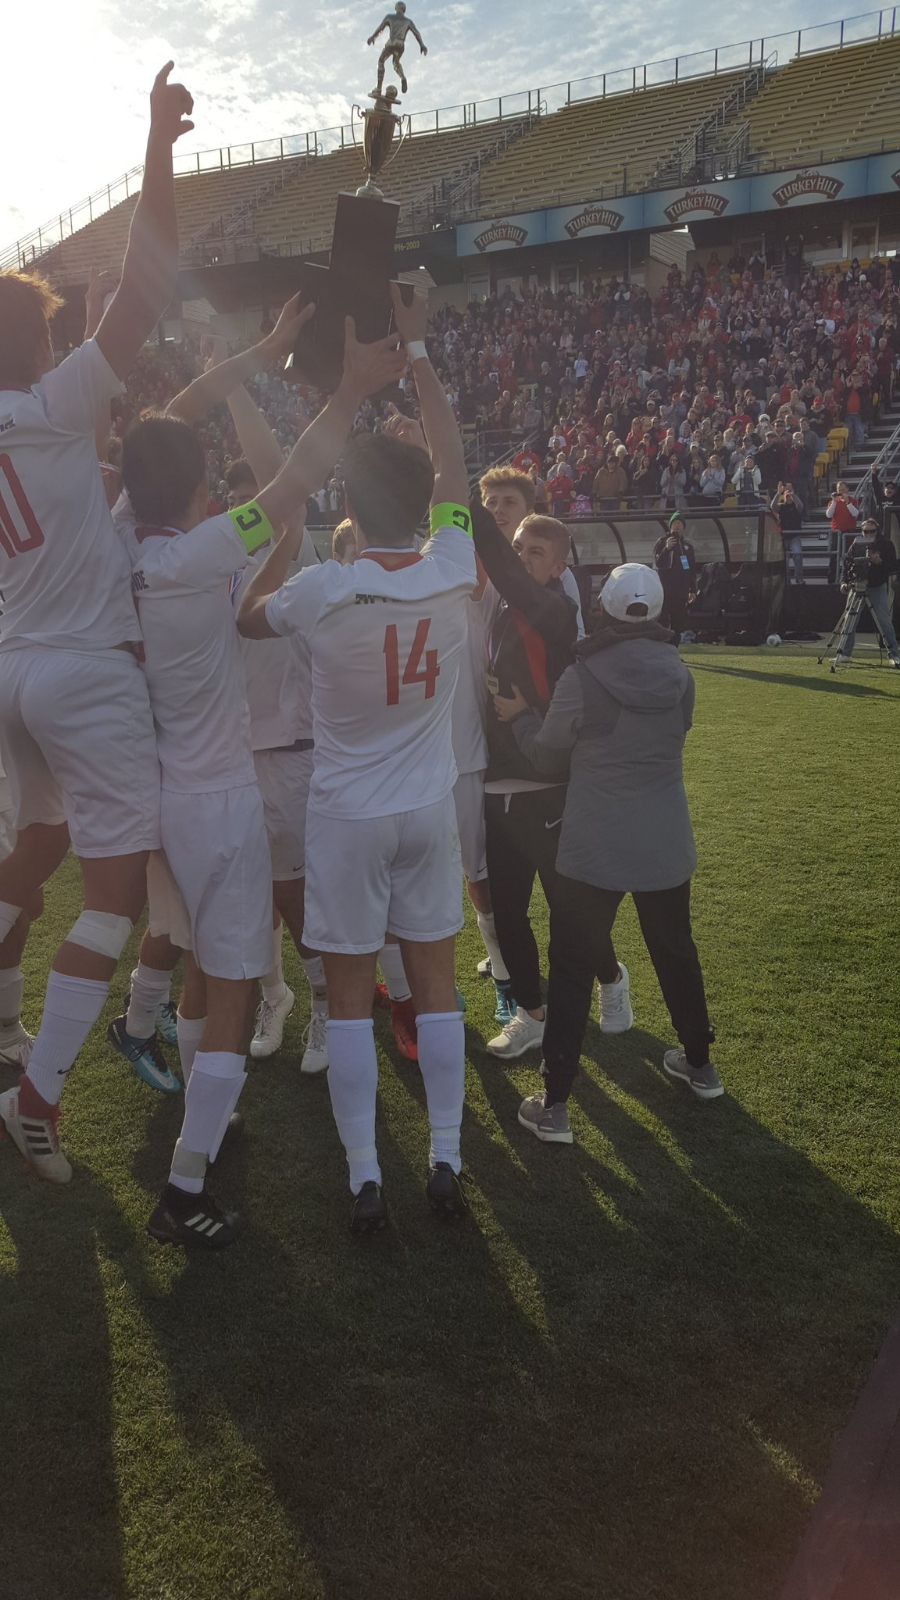 Soccer State Championship Celebration Planned for Sunday, Nov. 17th at 2pm in HS Gym